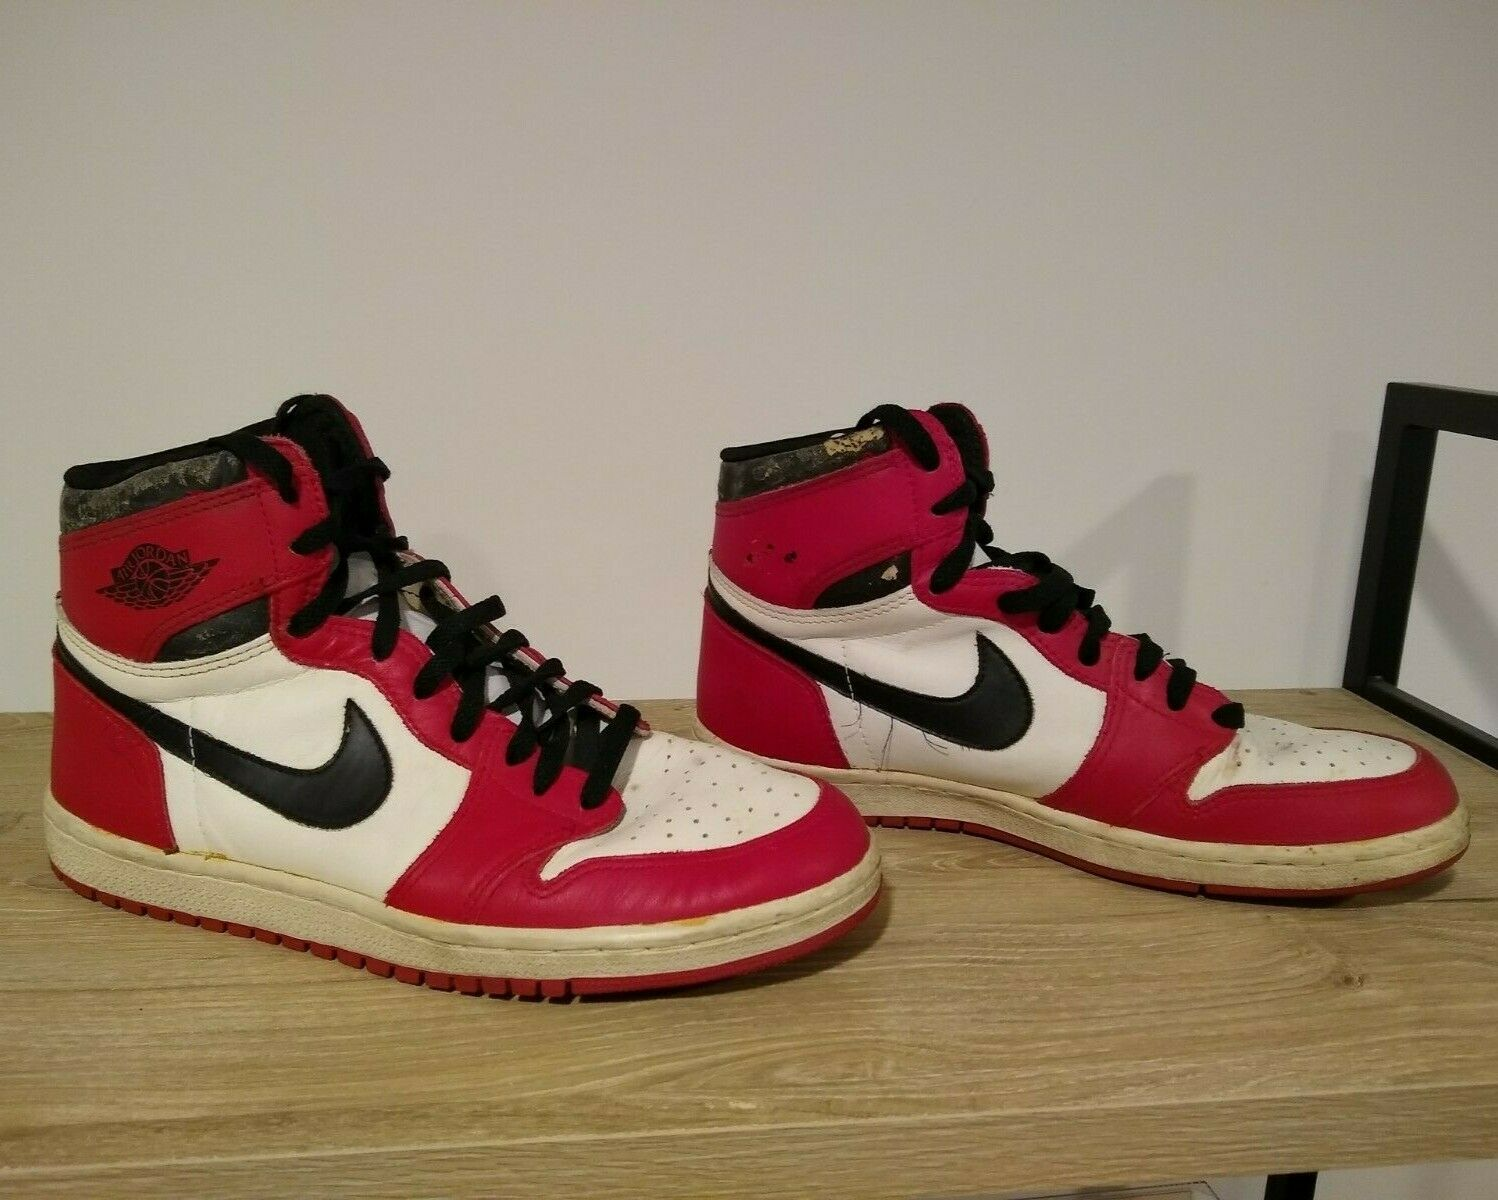 Original pair of 1985 Nike Air Jordan 1 Chicago shoes – Size 10.5 – Barely Used